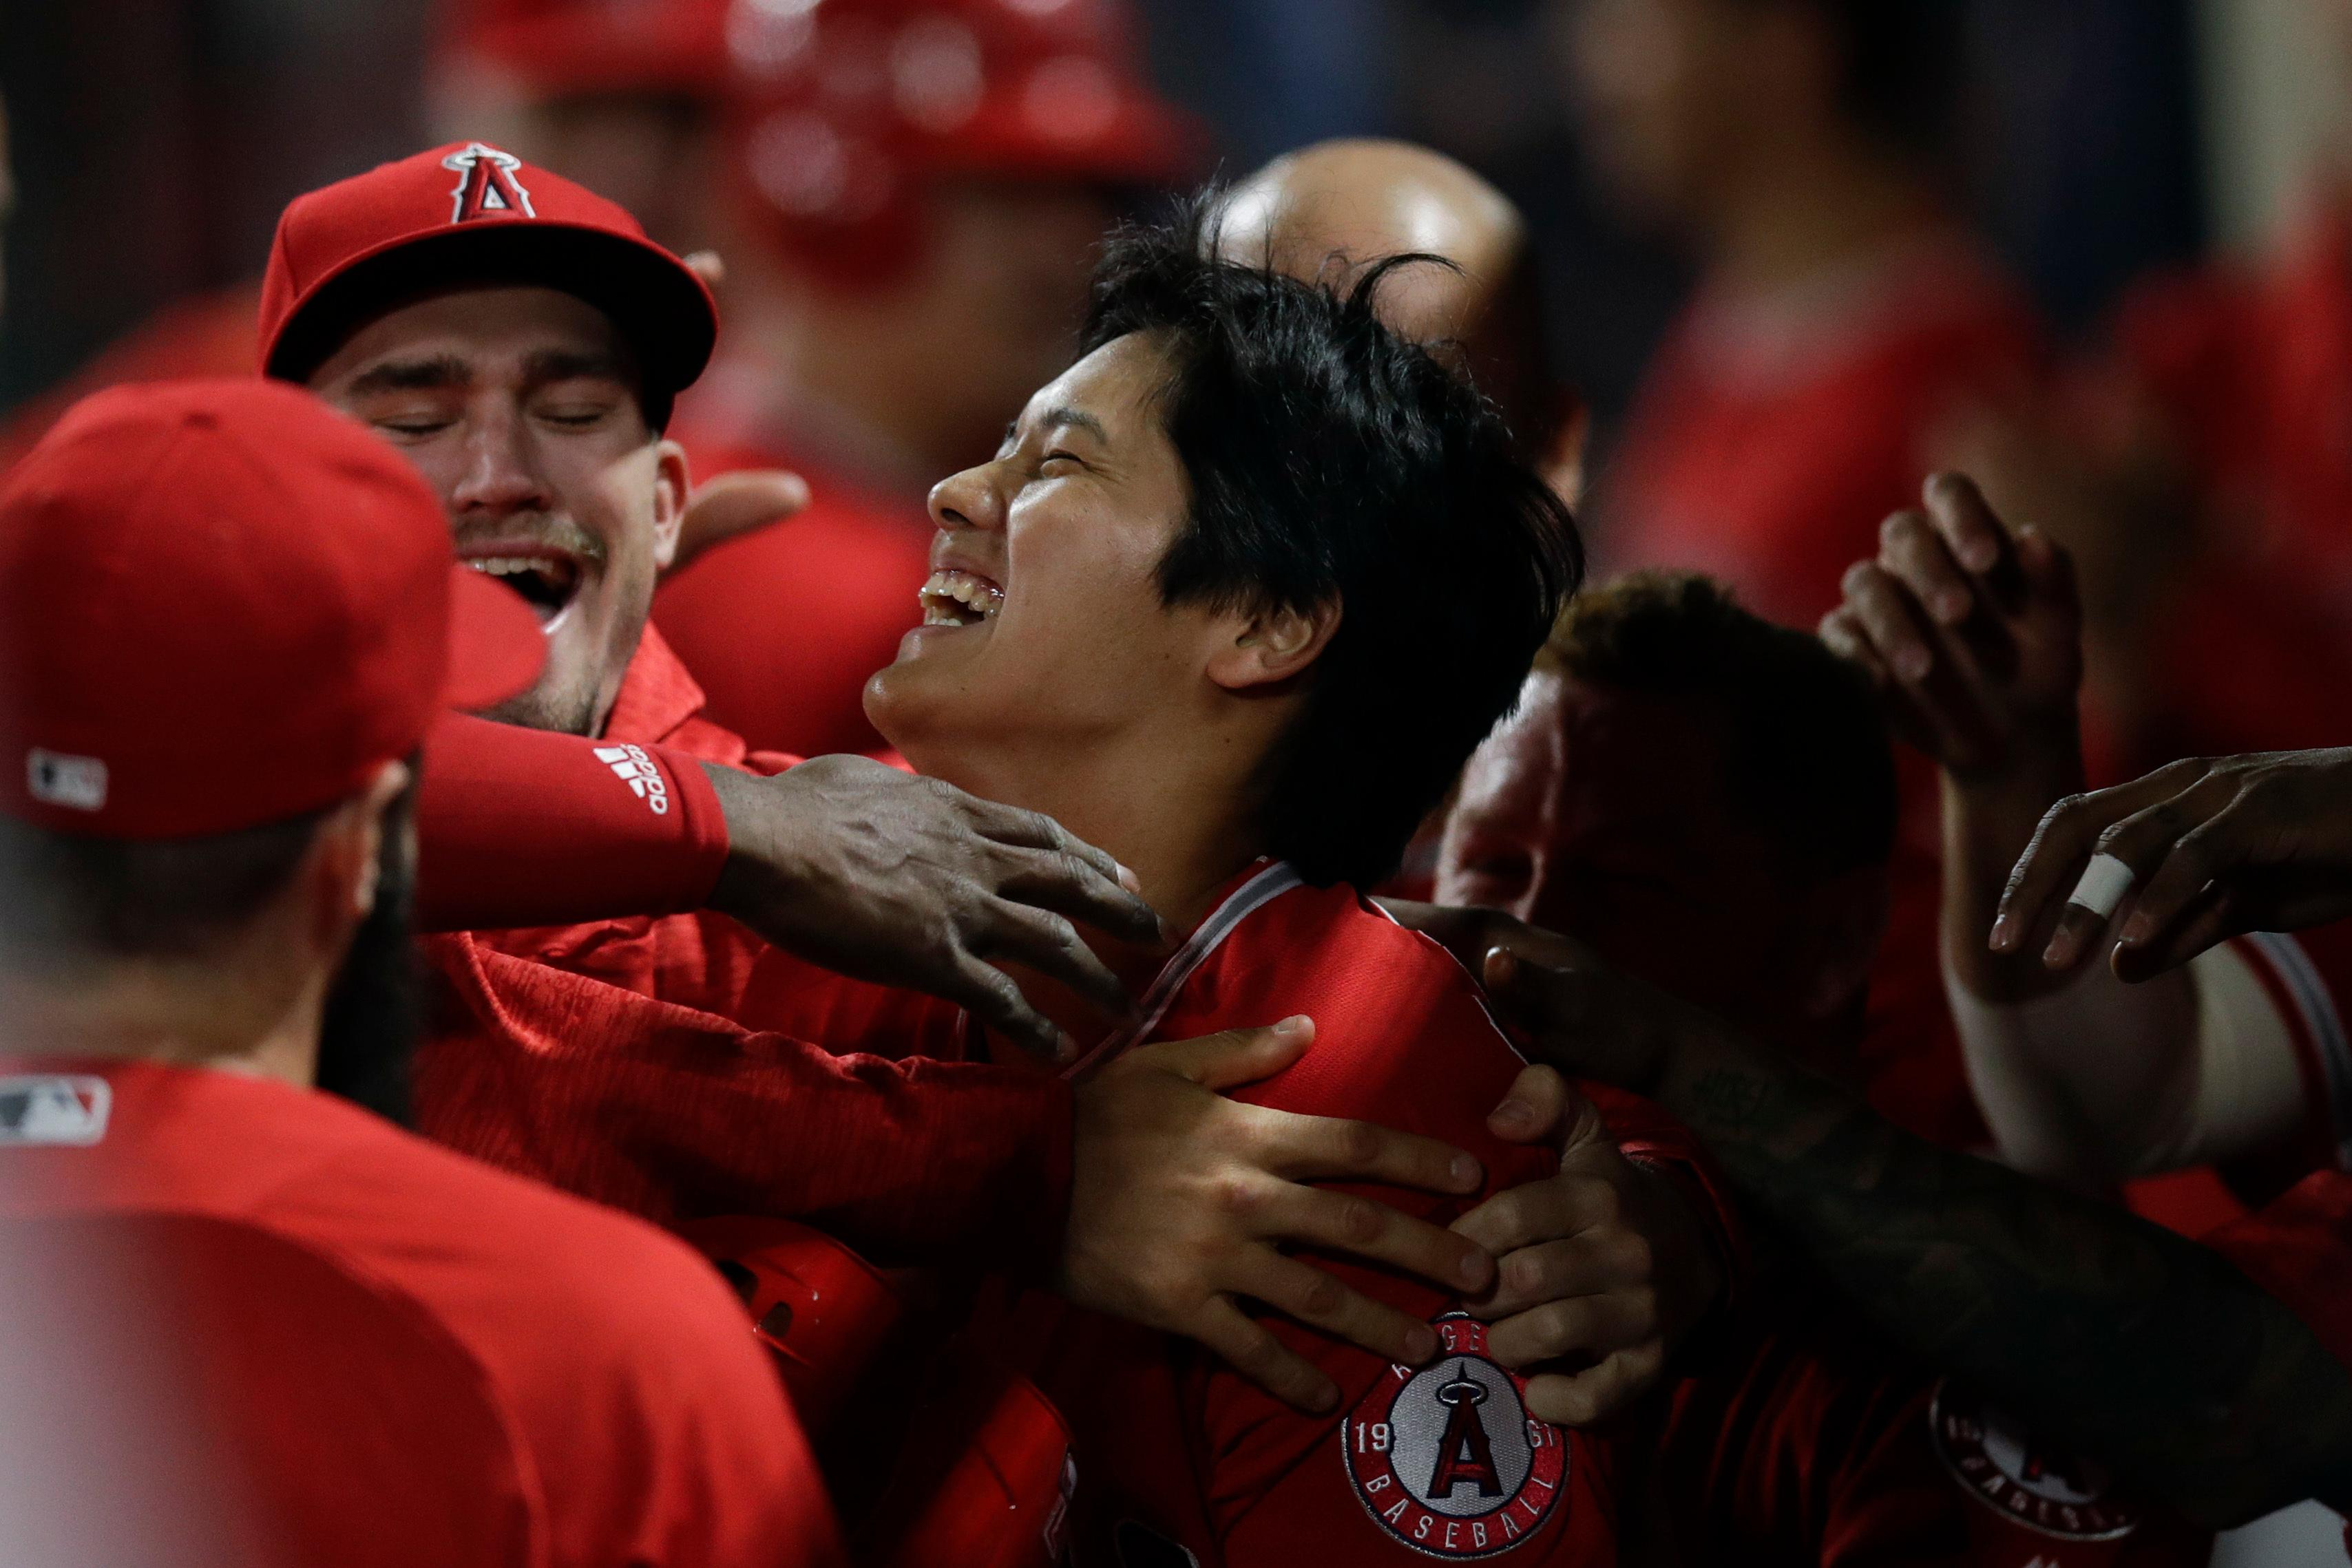 Los Angeles Angels starting pitcher Shohei Ohtani, center, of Japan, celebrates his three-run home run in the dugout during the first inning of a baseball game against the Cleveland Indians, Tuesday, April 3, 2018, in Anaheim, Calif. (AP Photo/Jae C. Hong)